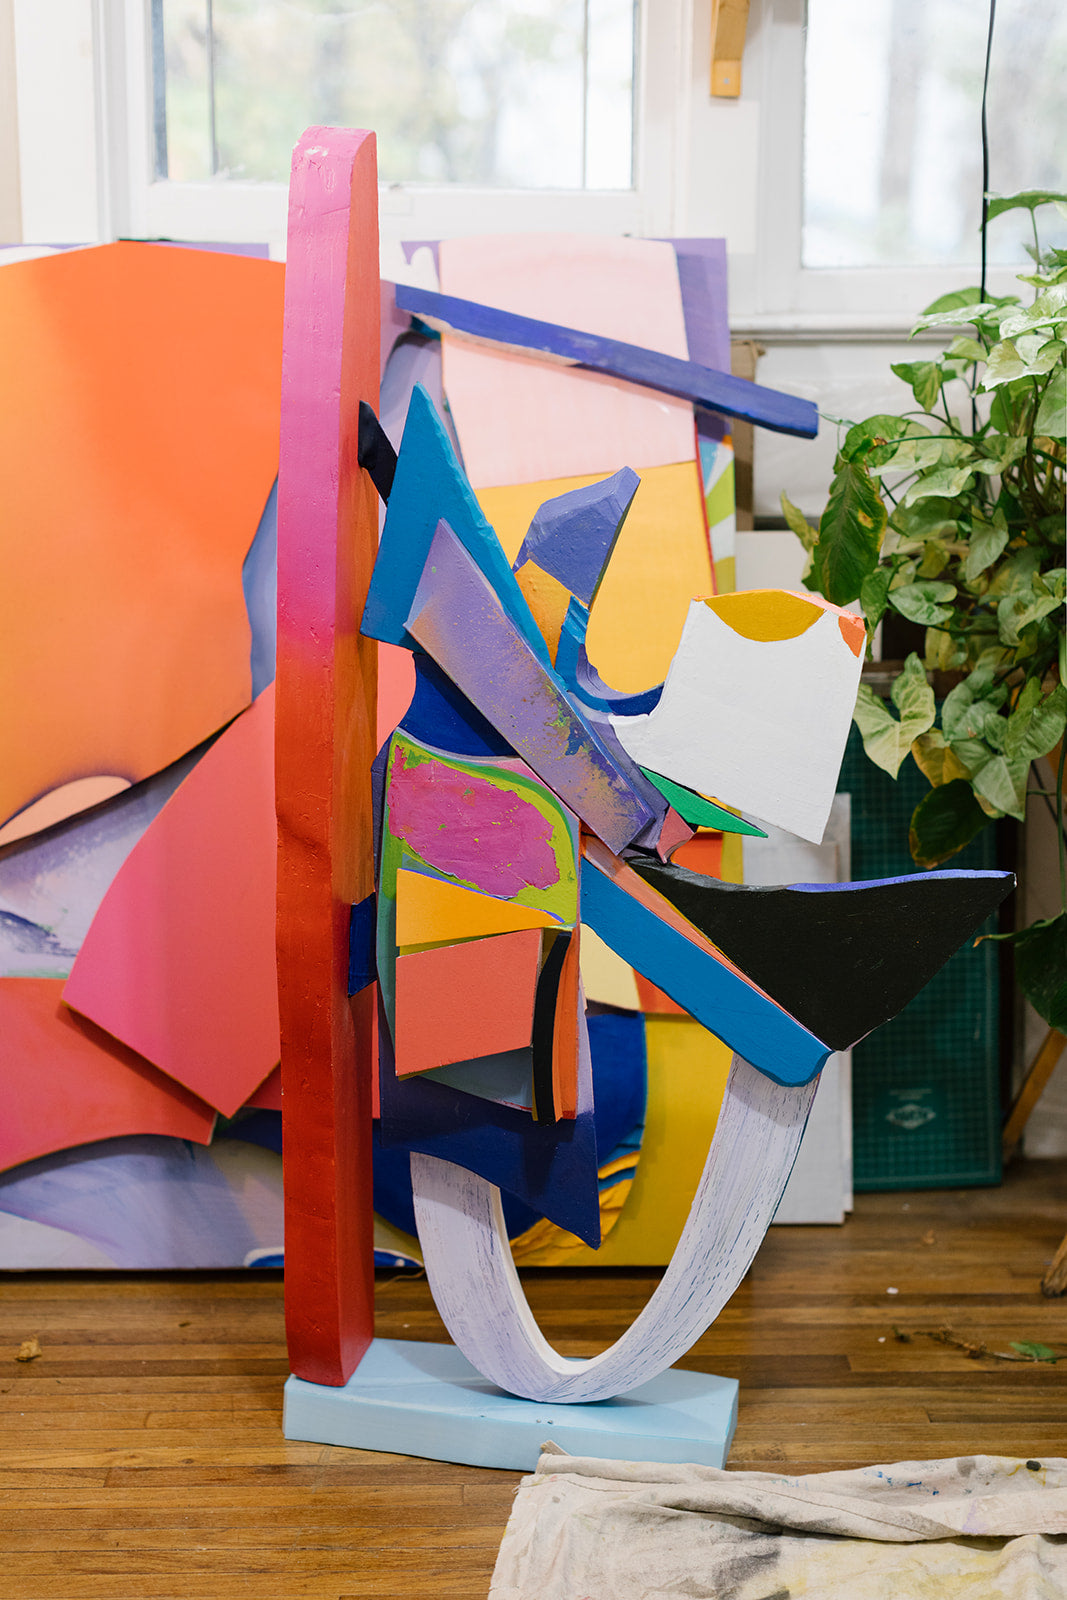 Photograph of a colorful sculpture